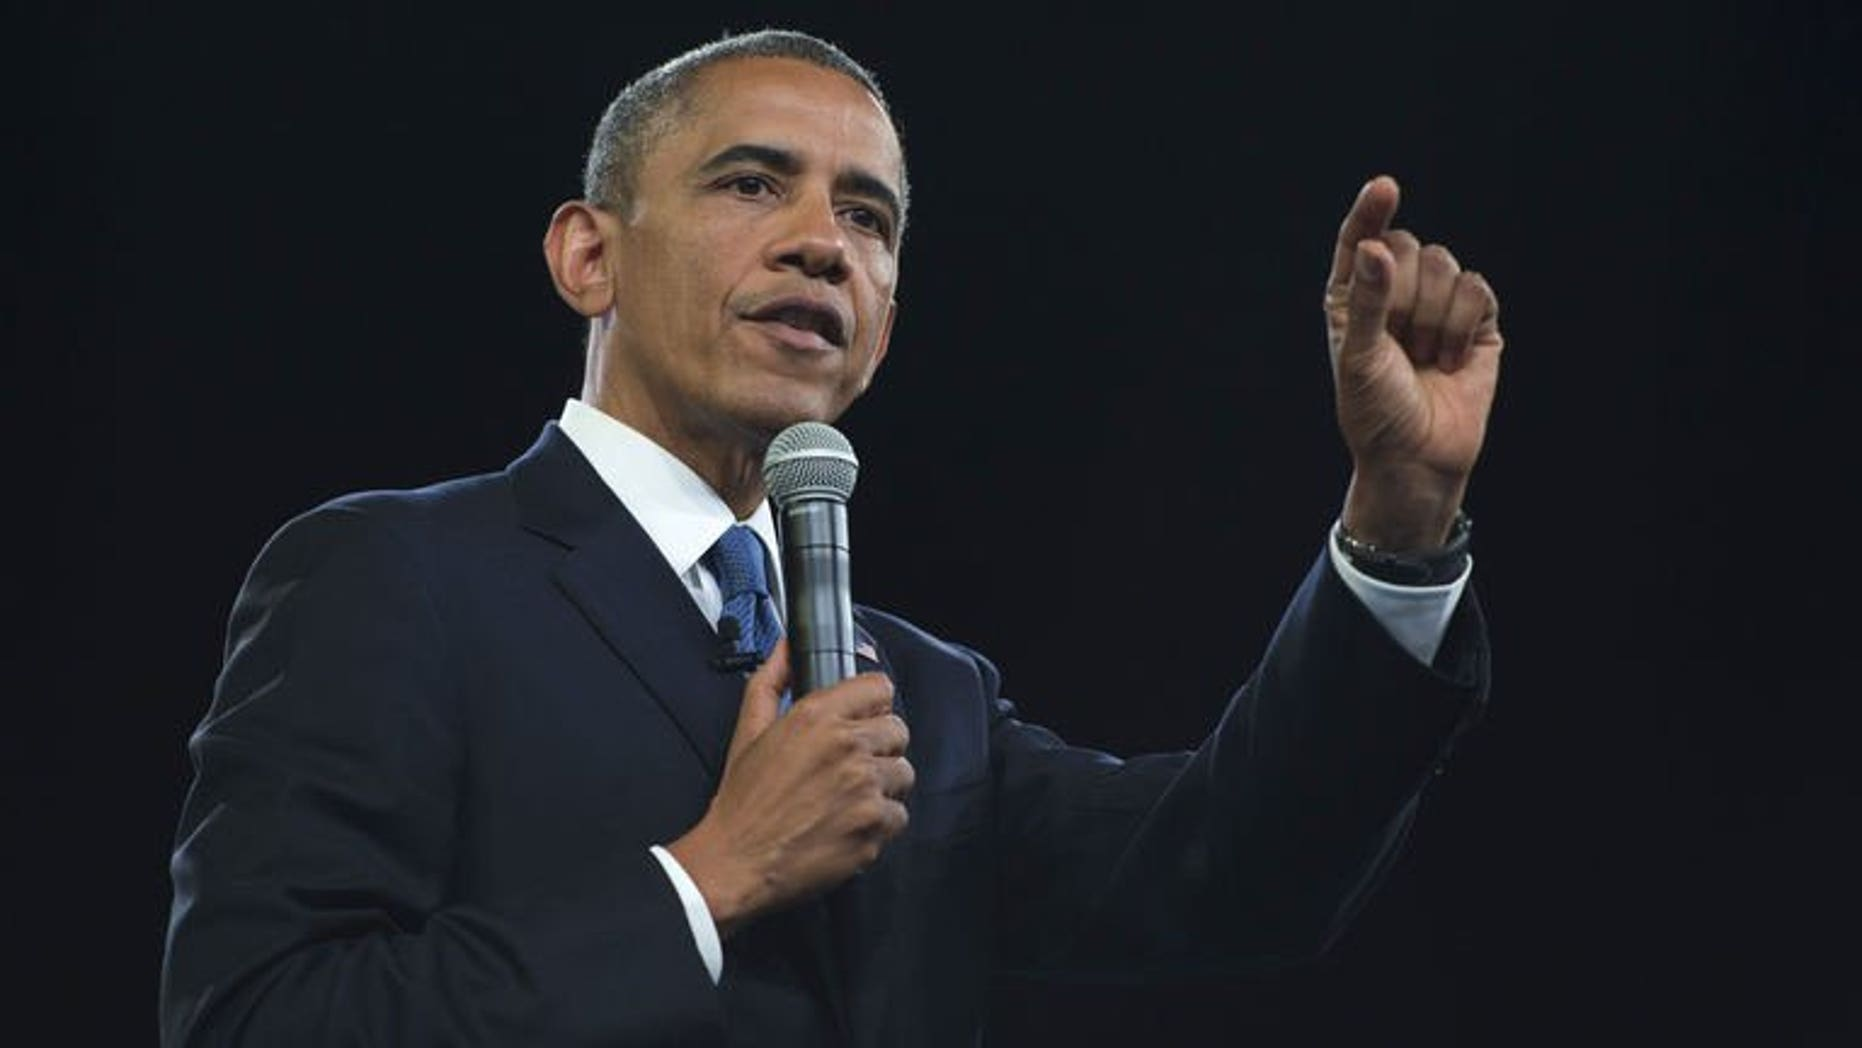 US President Barack Obama speaks during a meeting at the University of Johannesburg Soweto in Johannesburg, South Africa, on June 29, 2013.